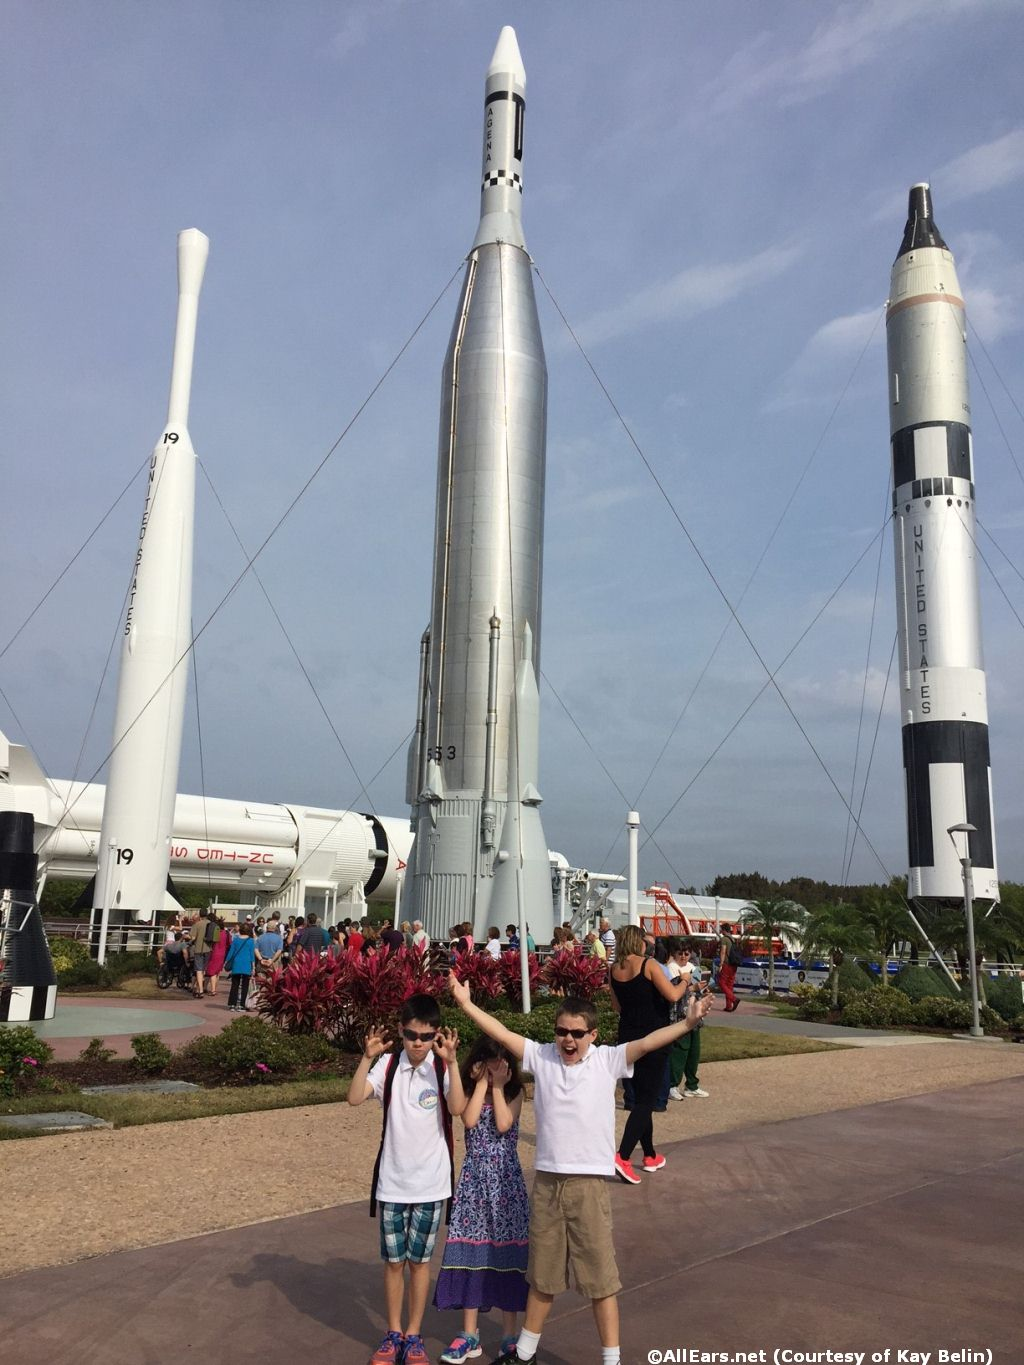 Disneyland Florida Visiting Kennedy Space Center - Multi-generational Family